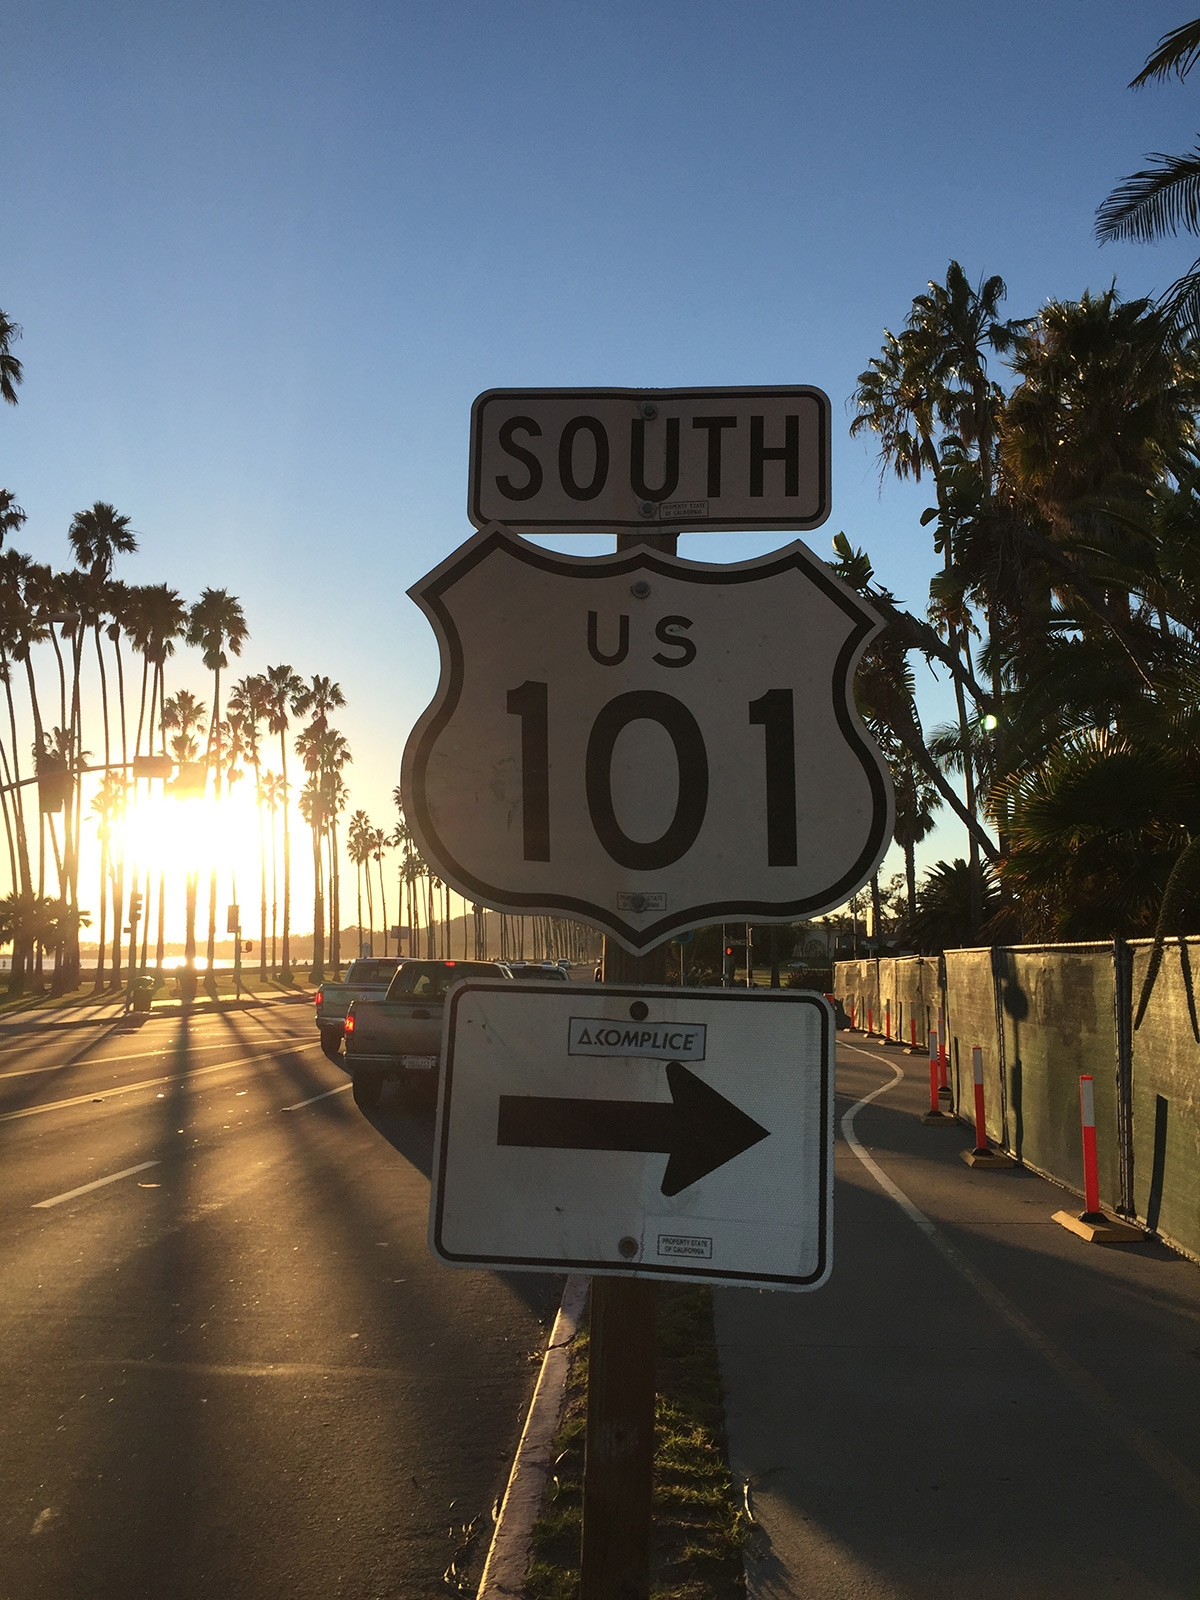 A road sign for South Route 101 and the sun setting behind tall palm trees